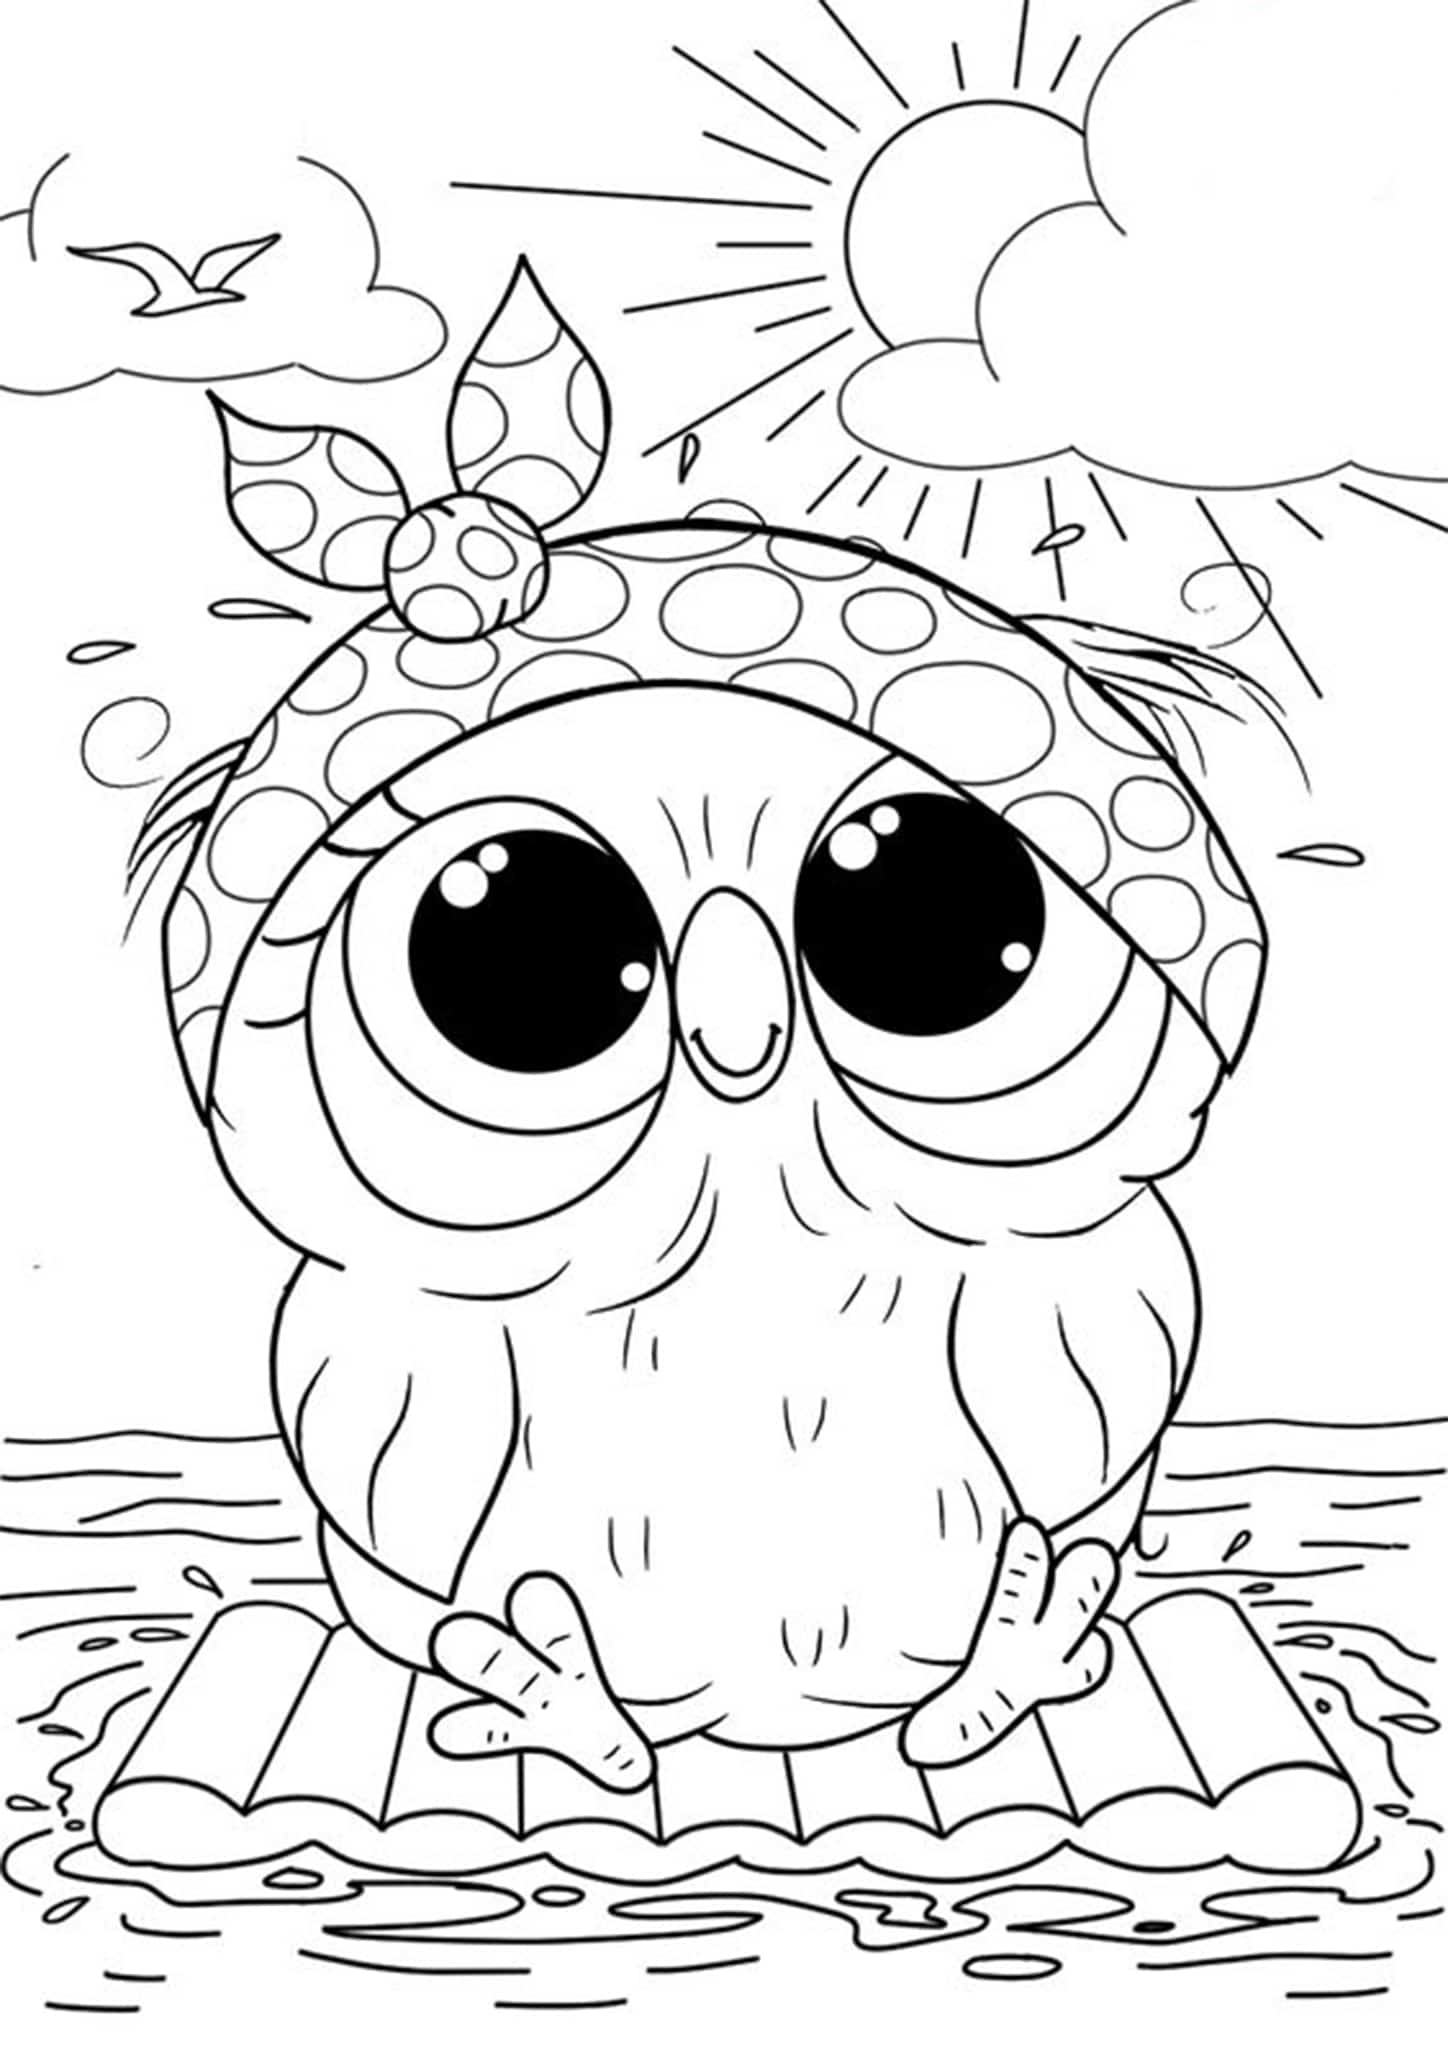 for coloring book free printable tangled coloring pages for kids cool2bkids coloring for book 1 1